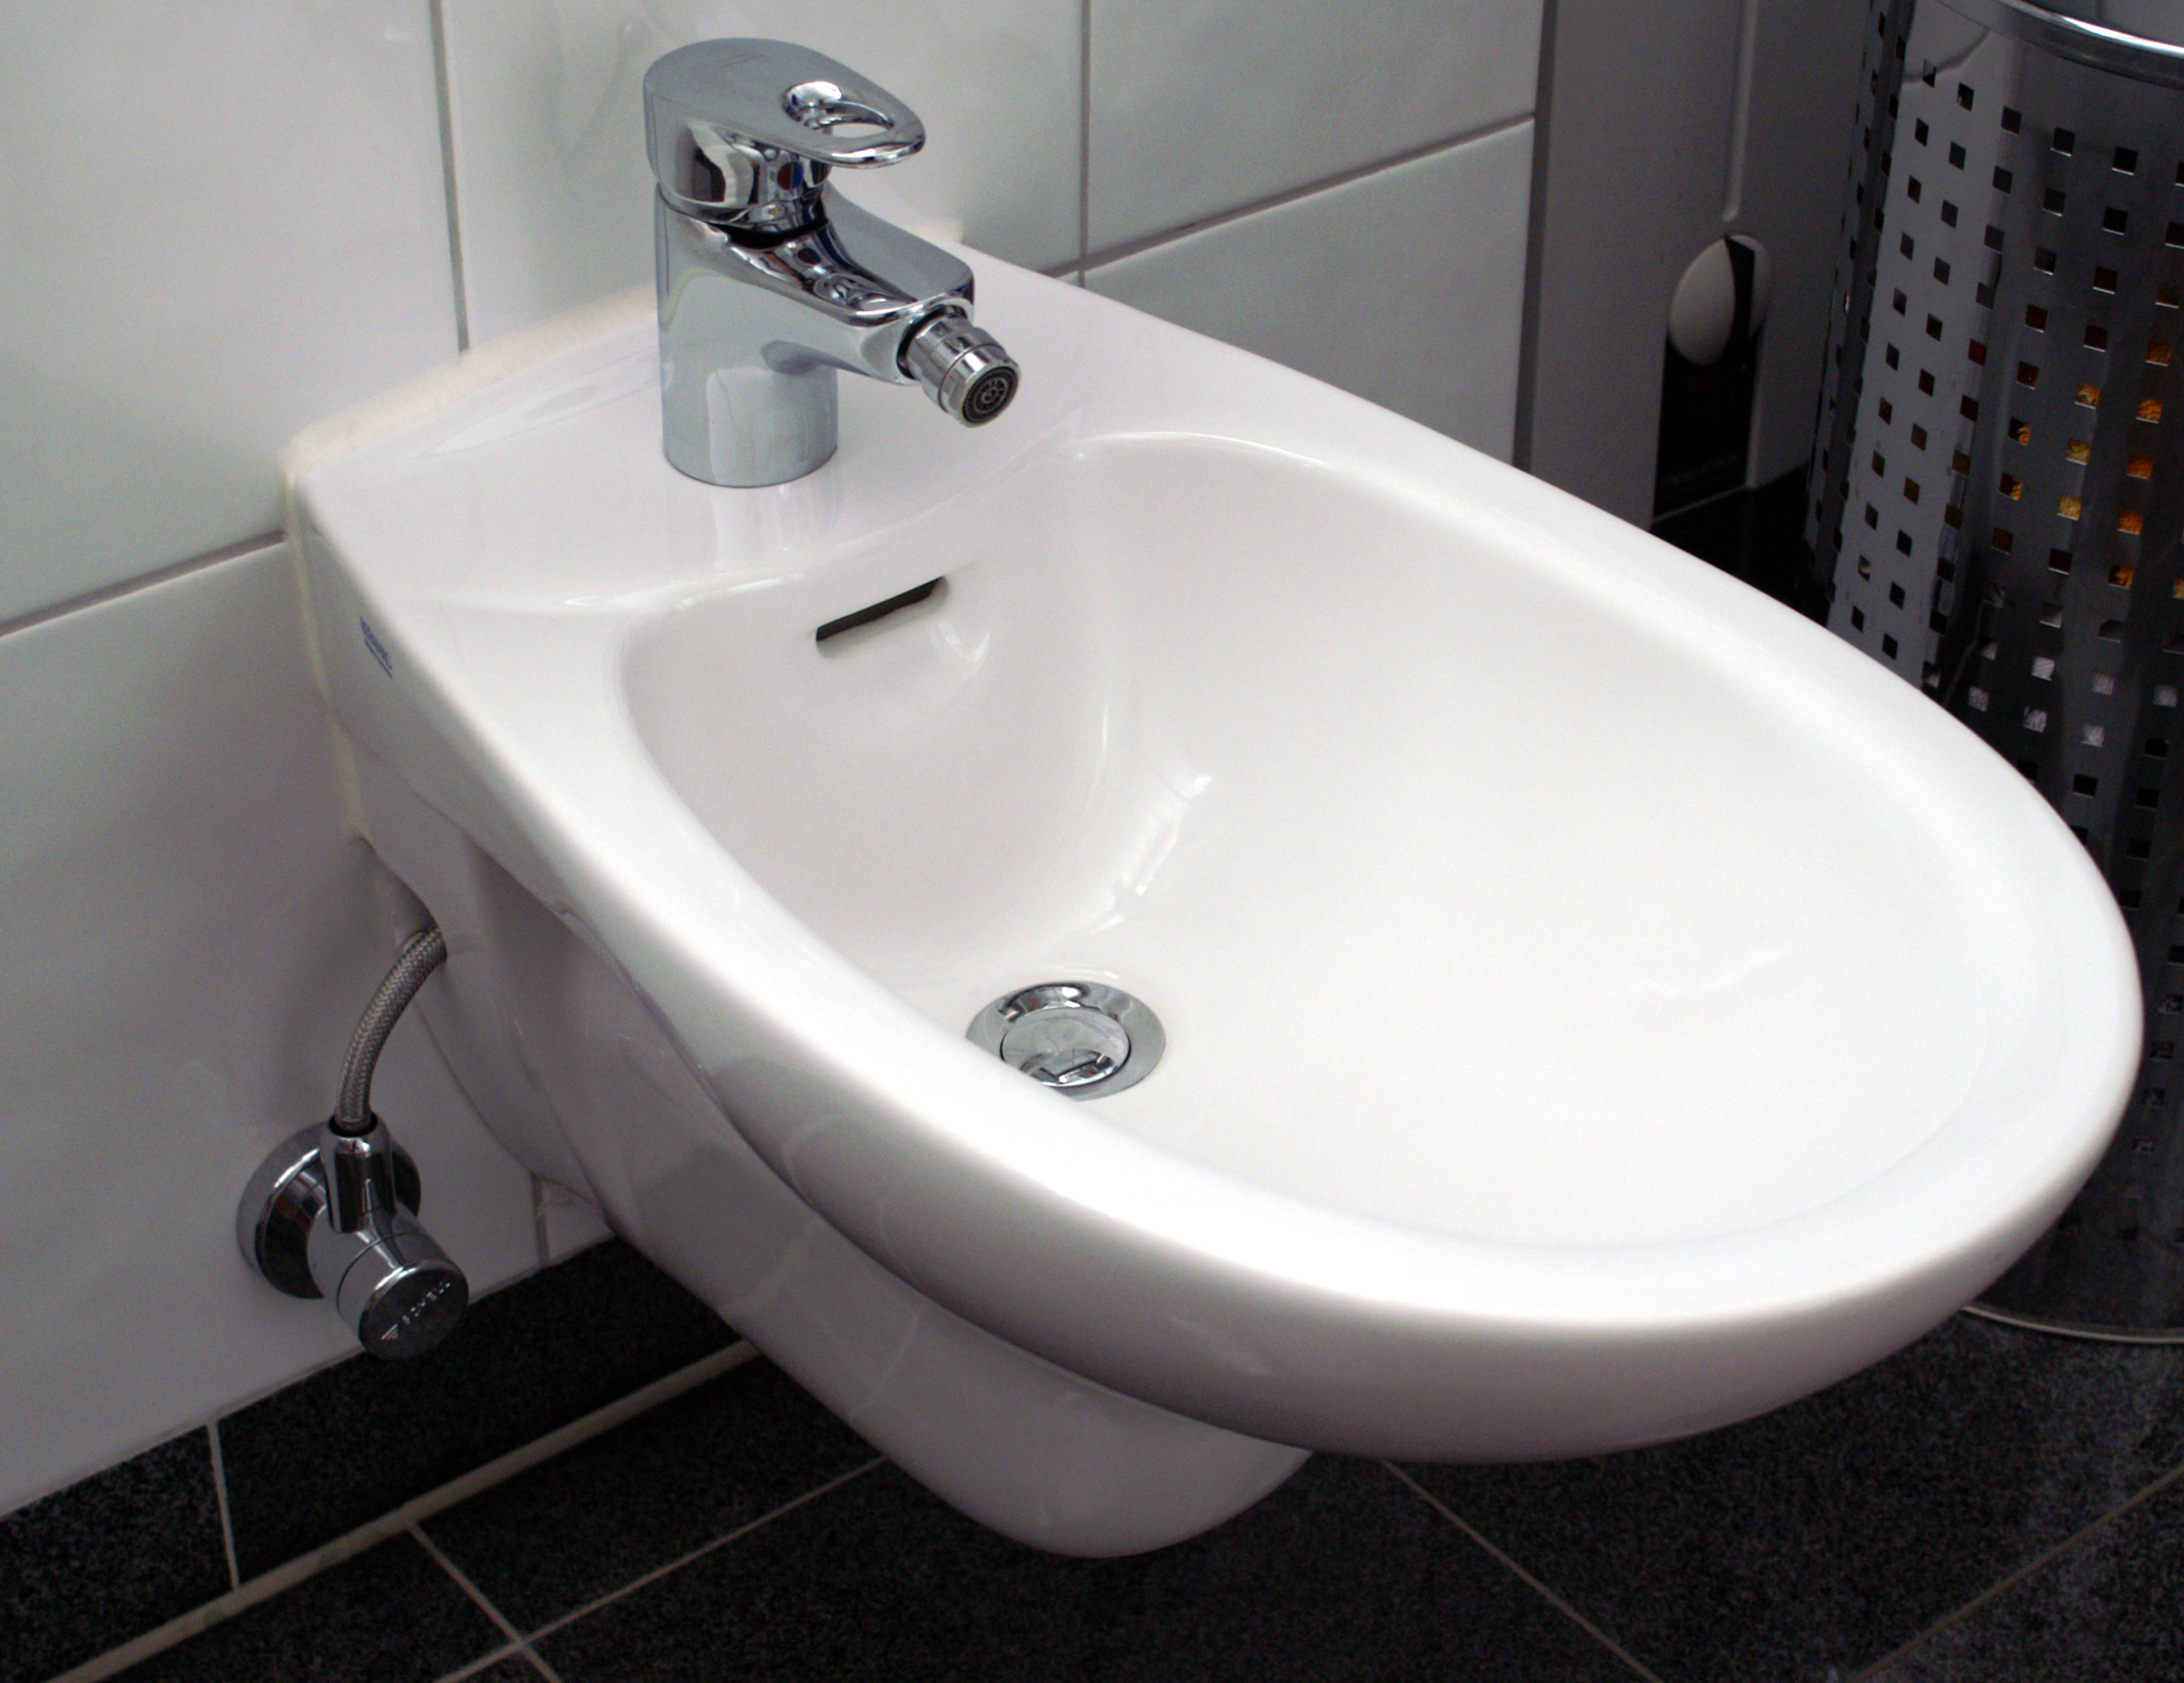 Imagenes De Baño Genital:Bathroom Toilets with Bidet